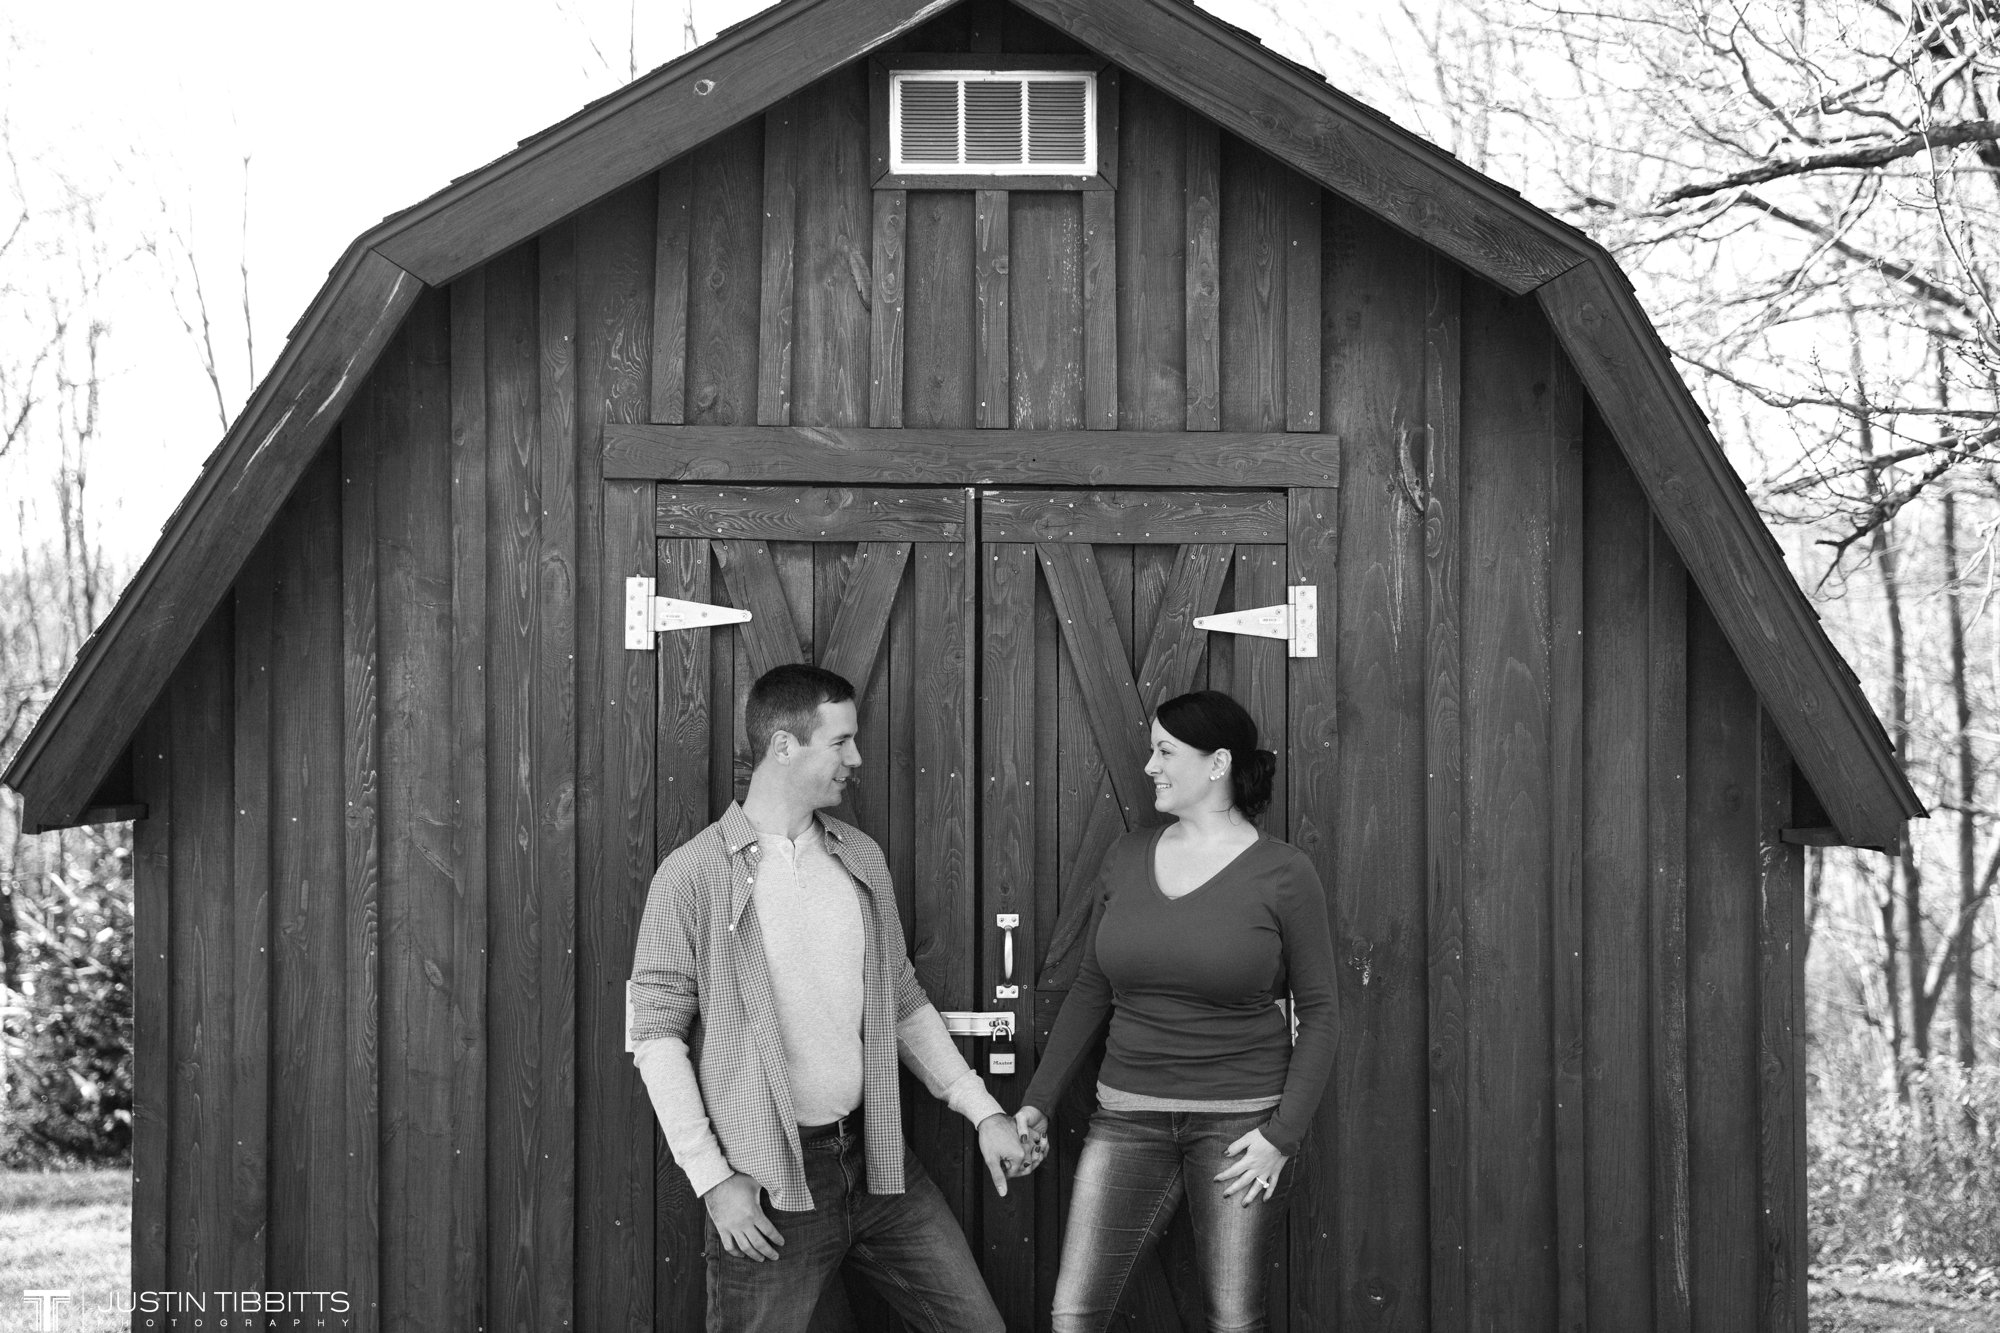 Justin Tibbitts Photography Kristie and Gregs Windham Mountain Resort Engagement Shoot-80